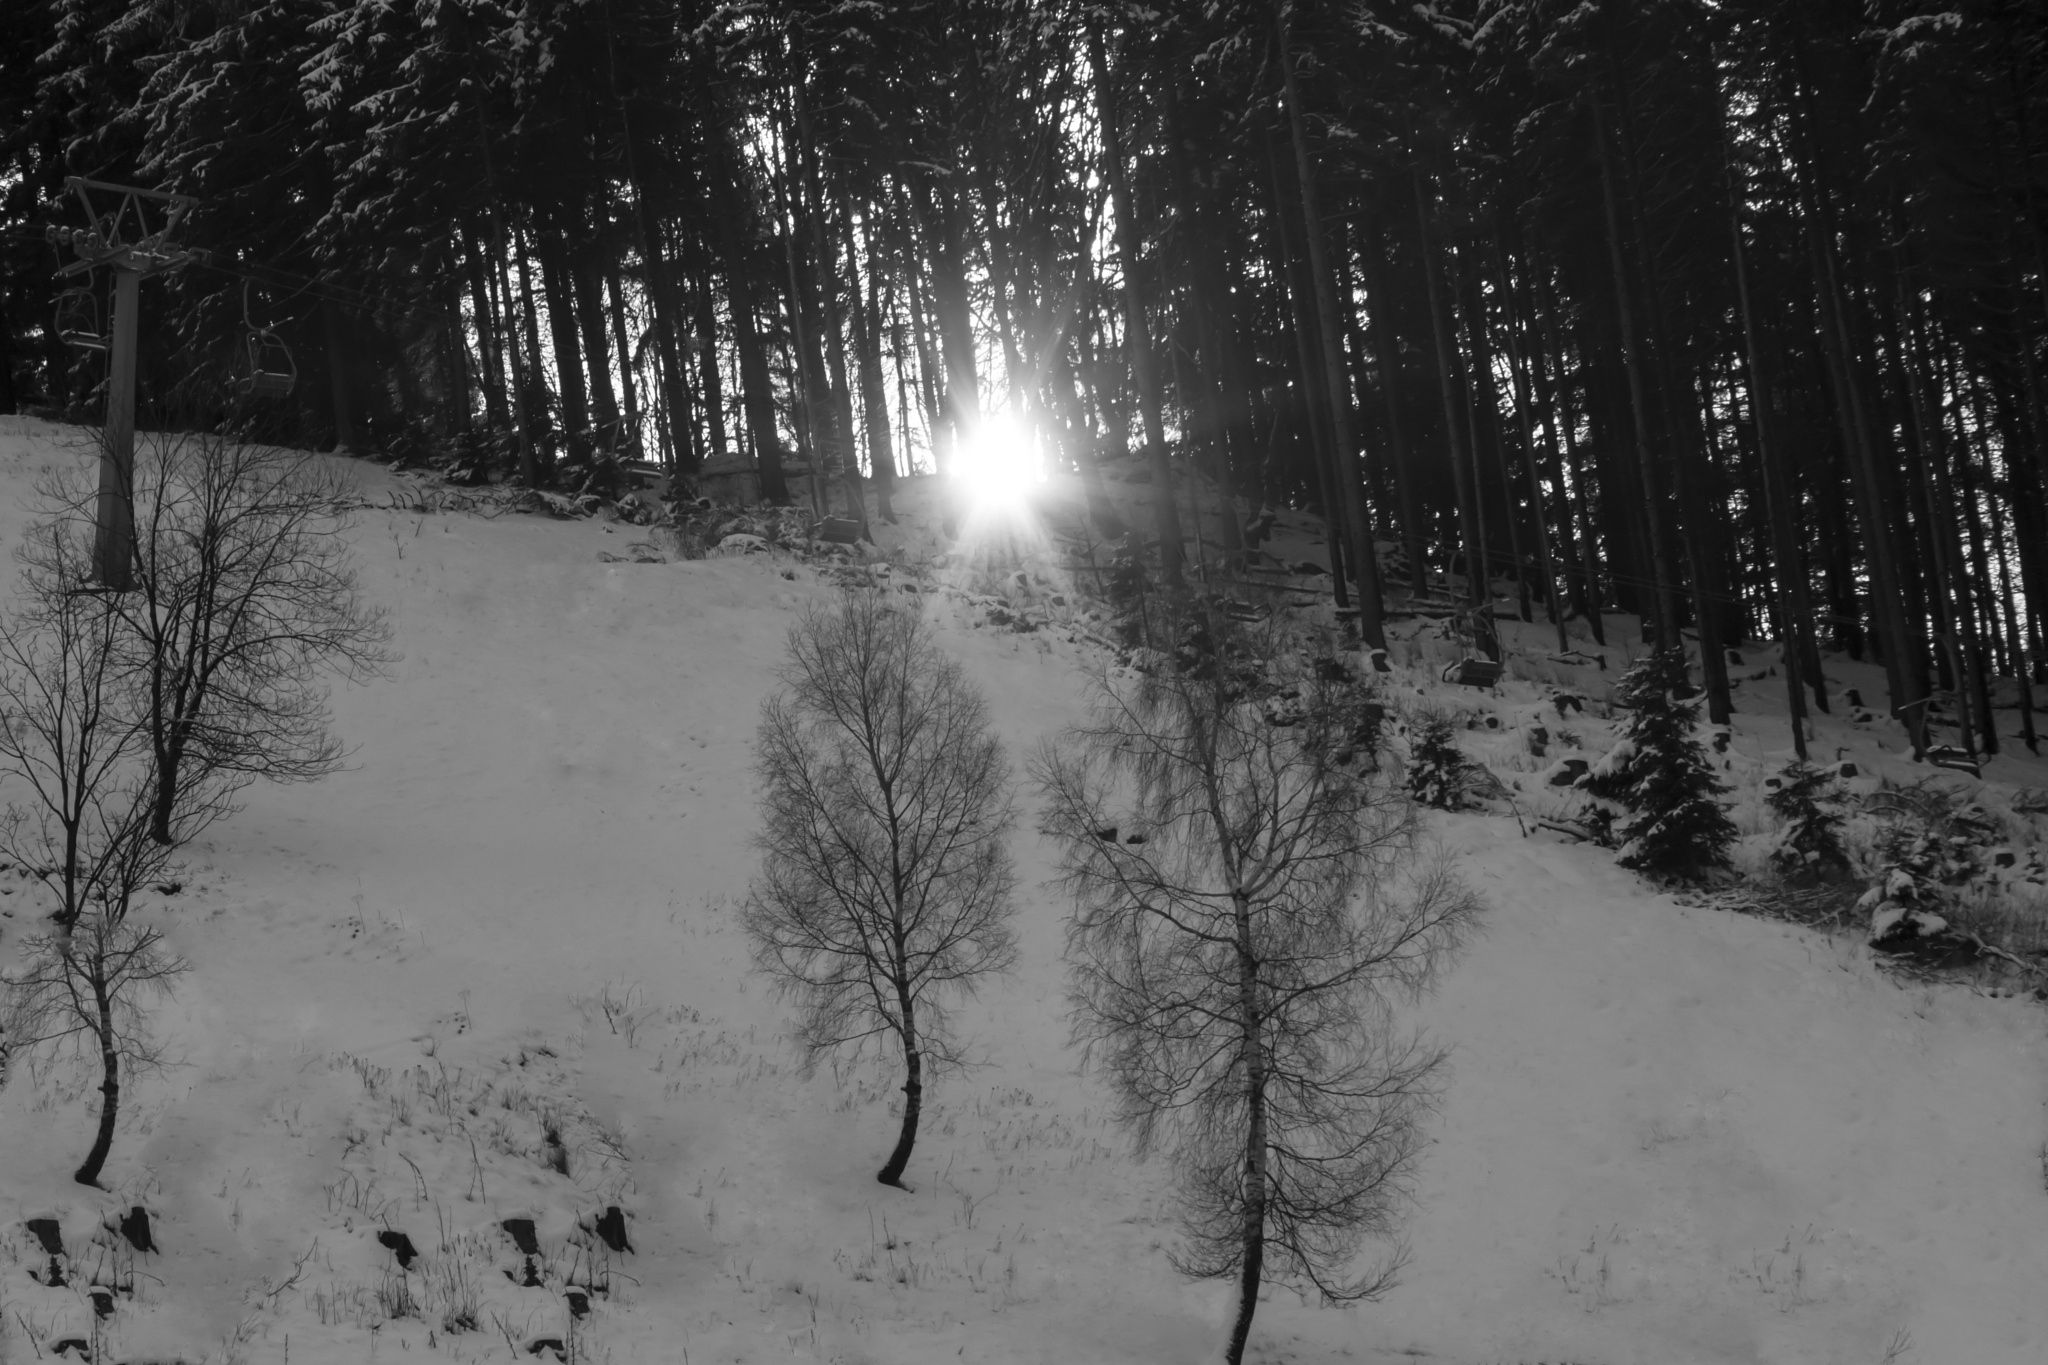 Hope at the End of the Road - Sunset in black and white between trees